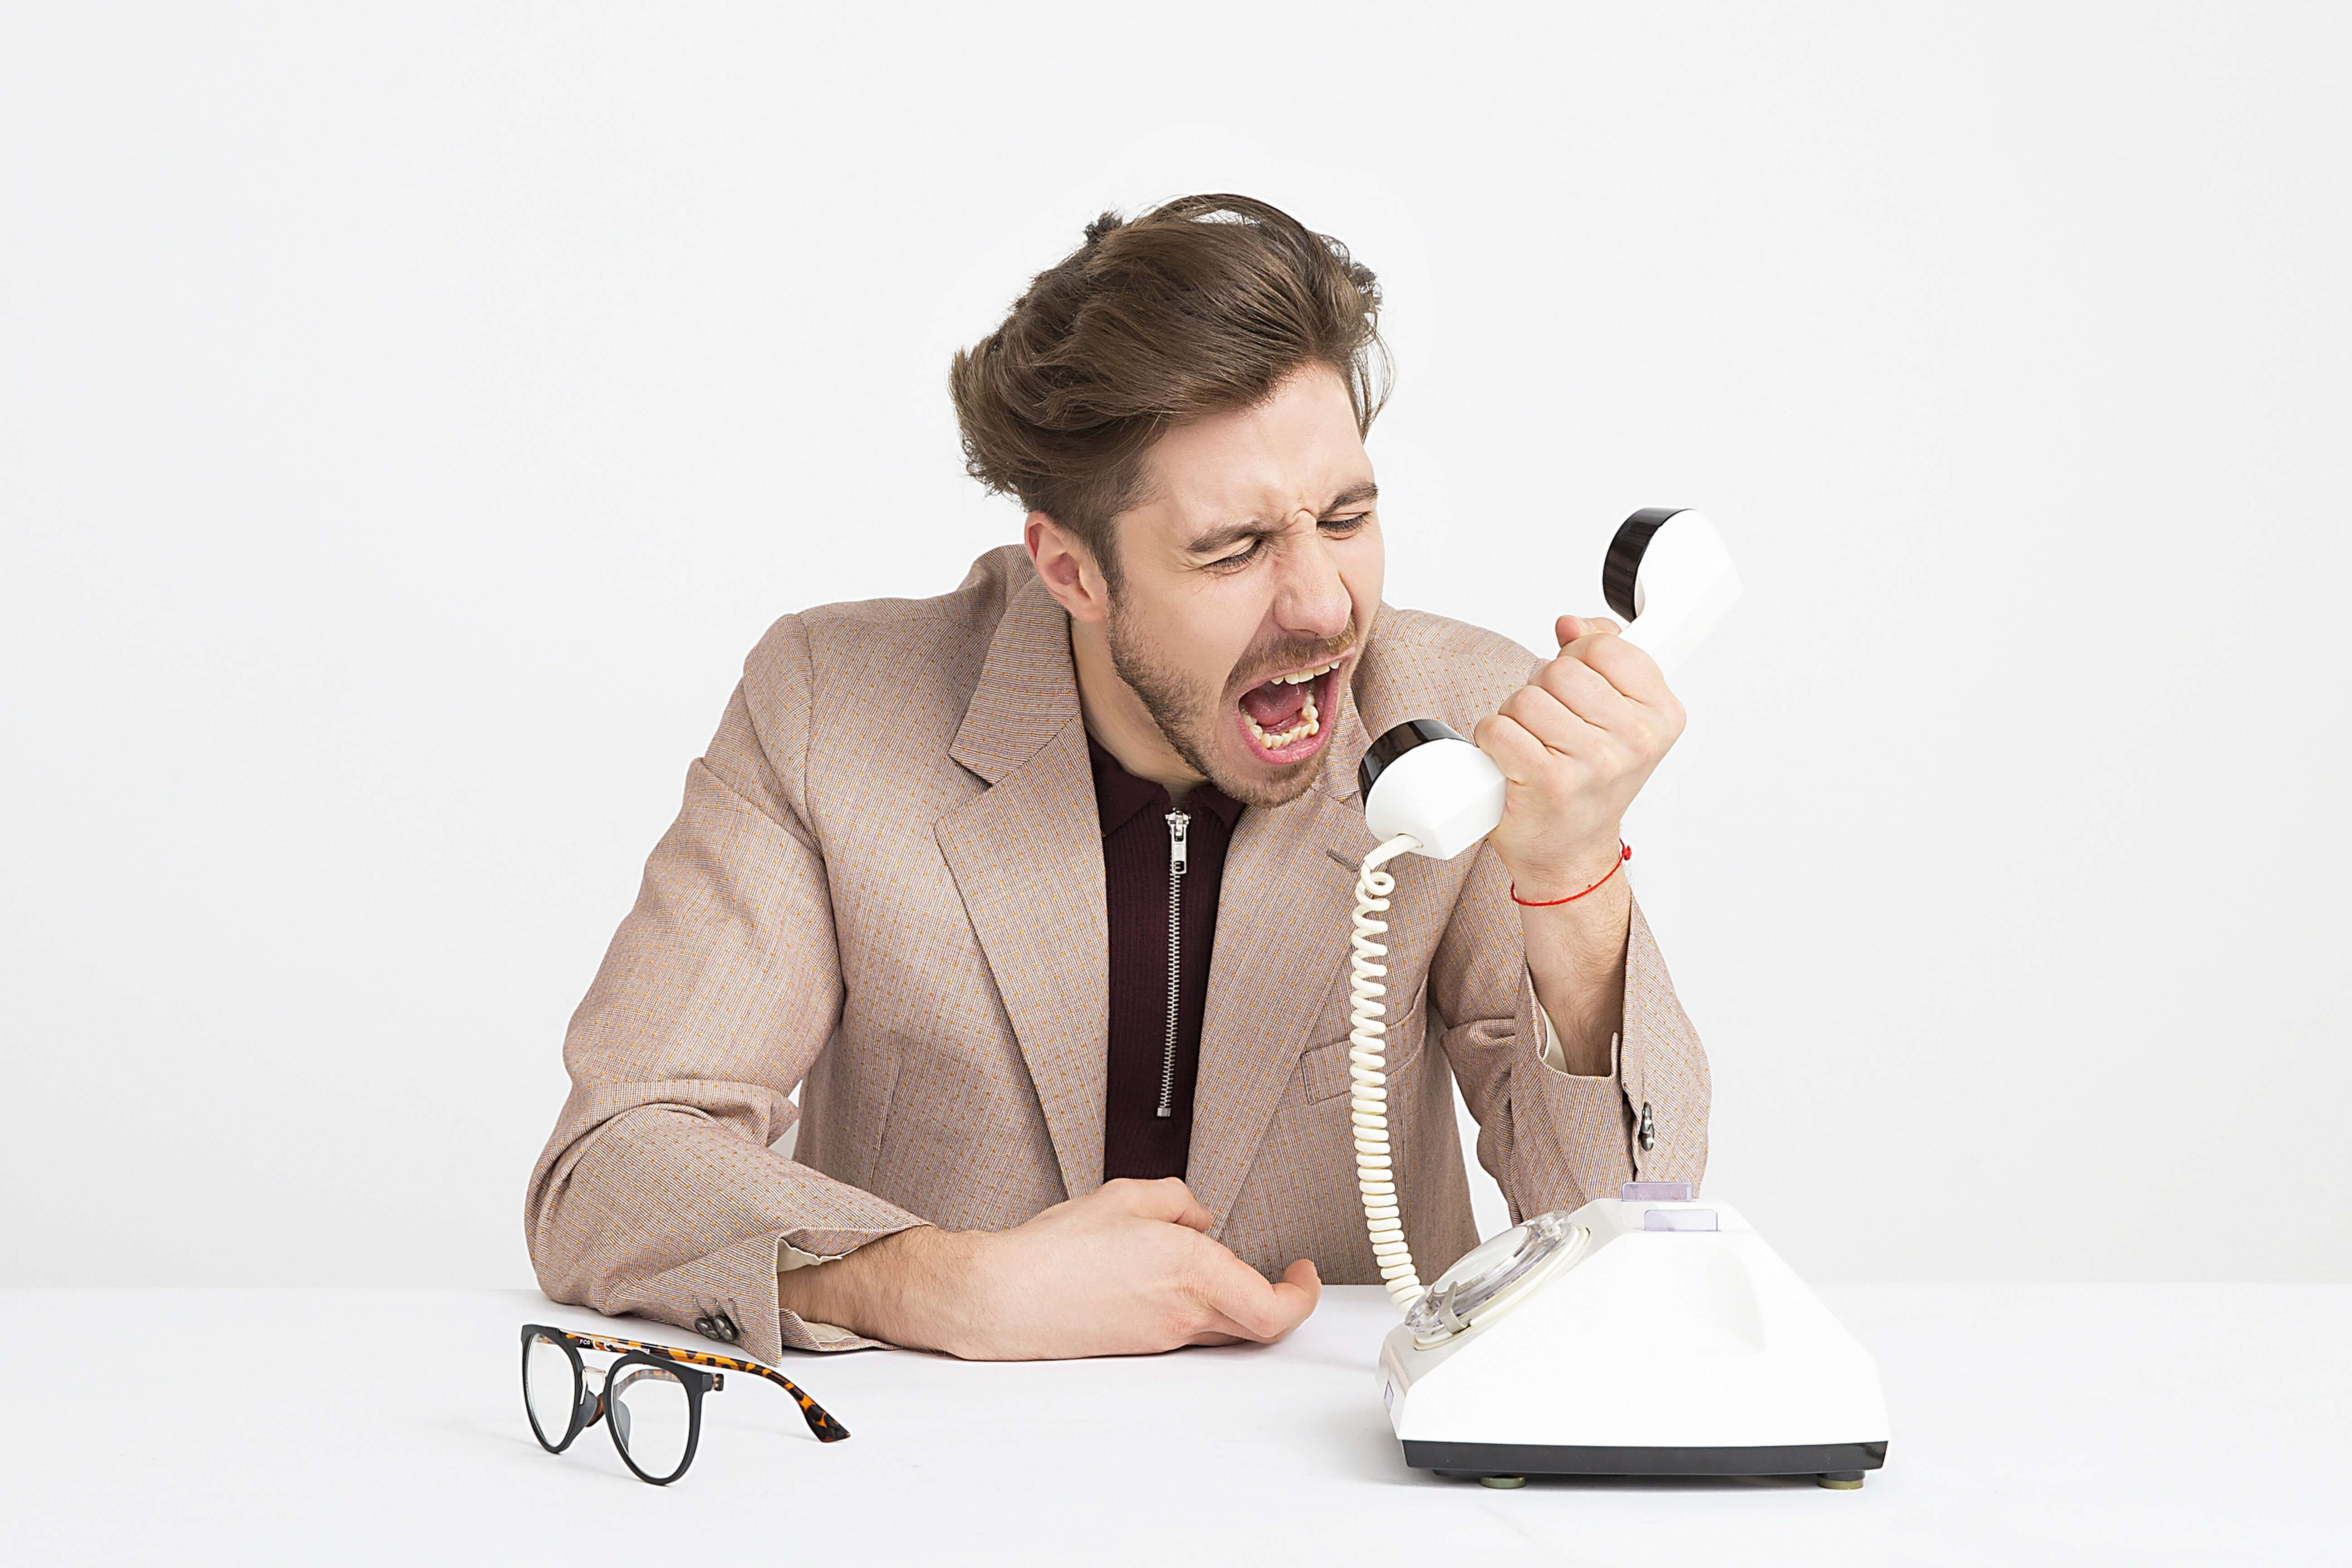 Man shouting on phone as he receives bad customer experience